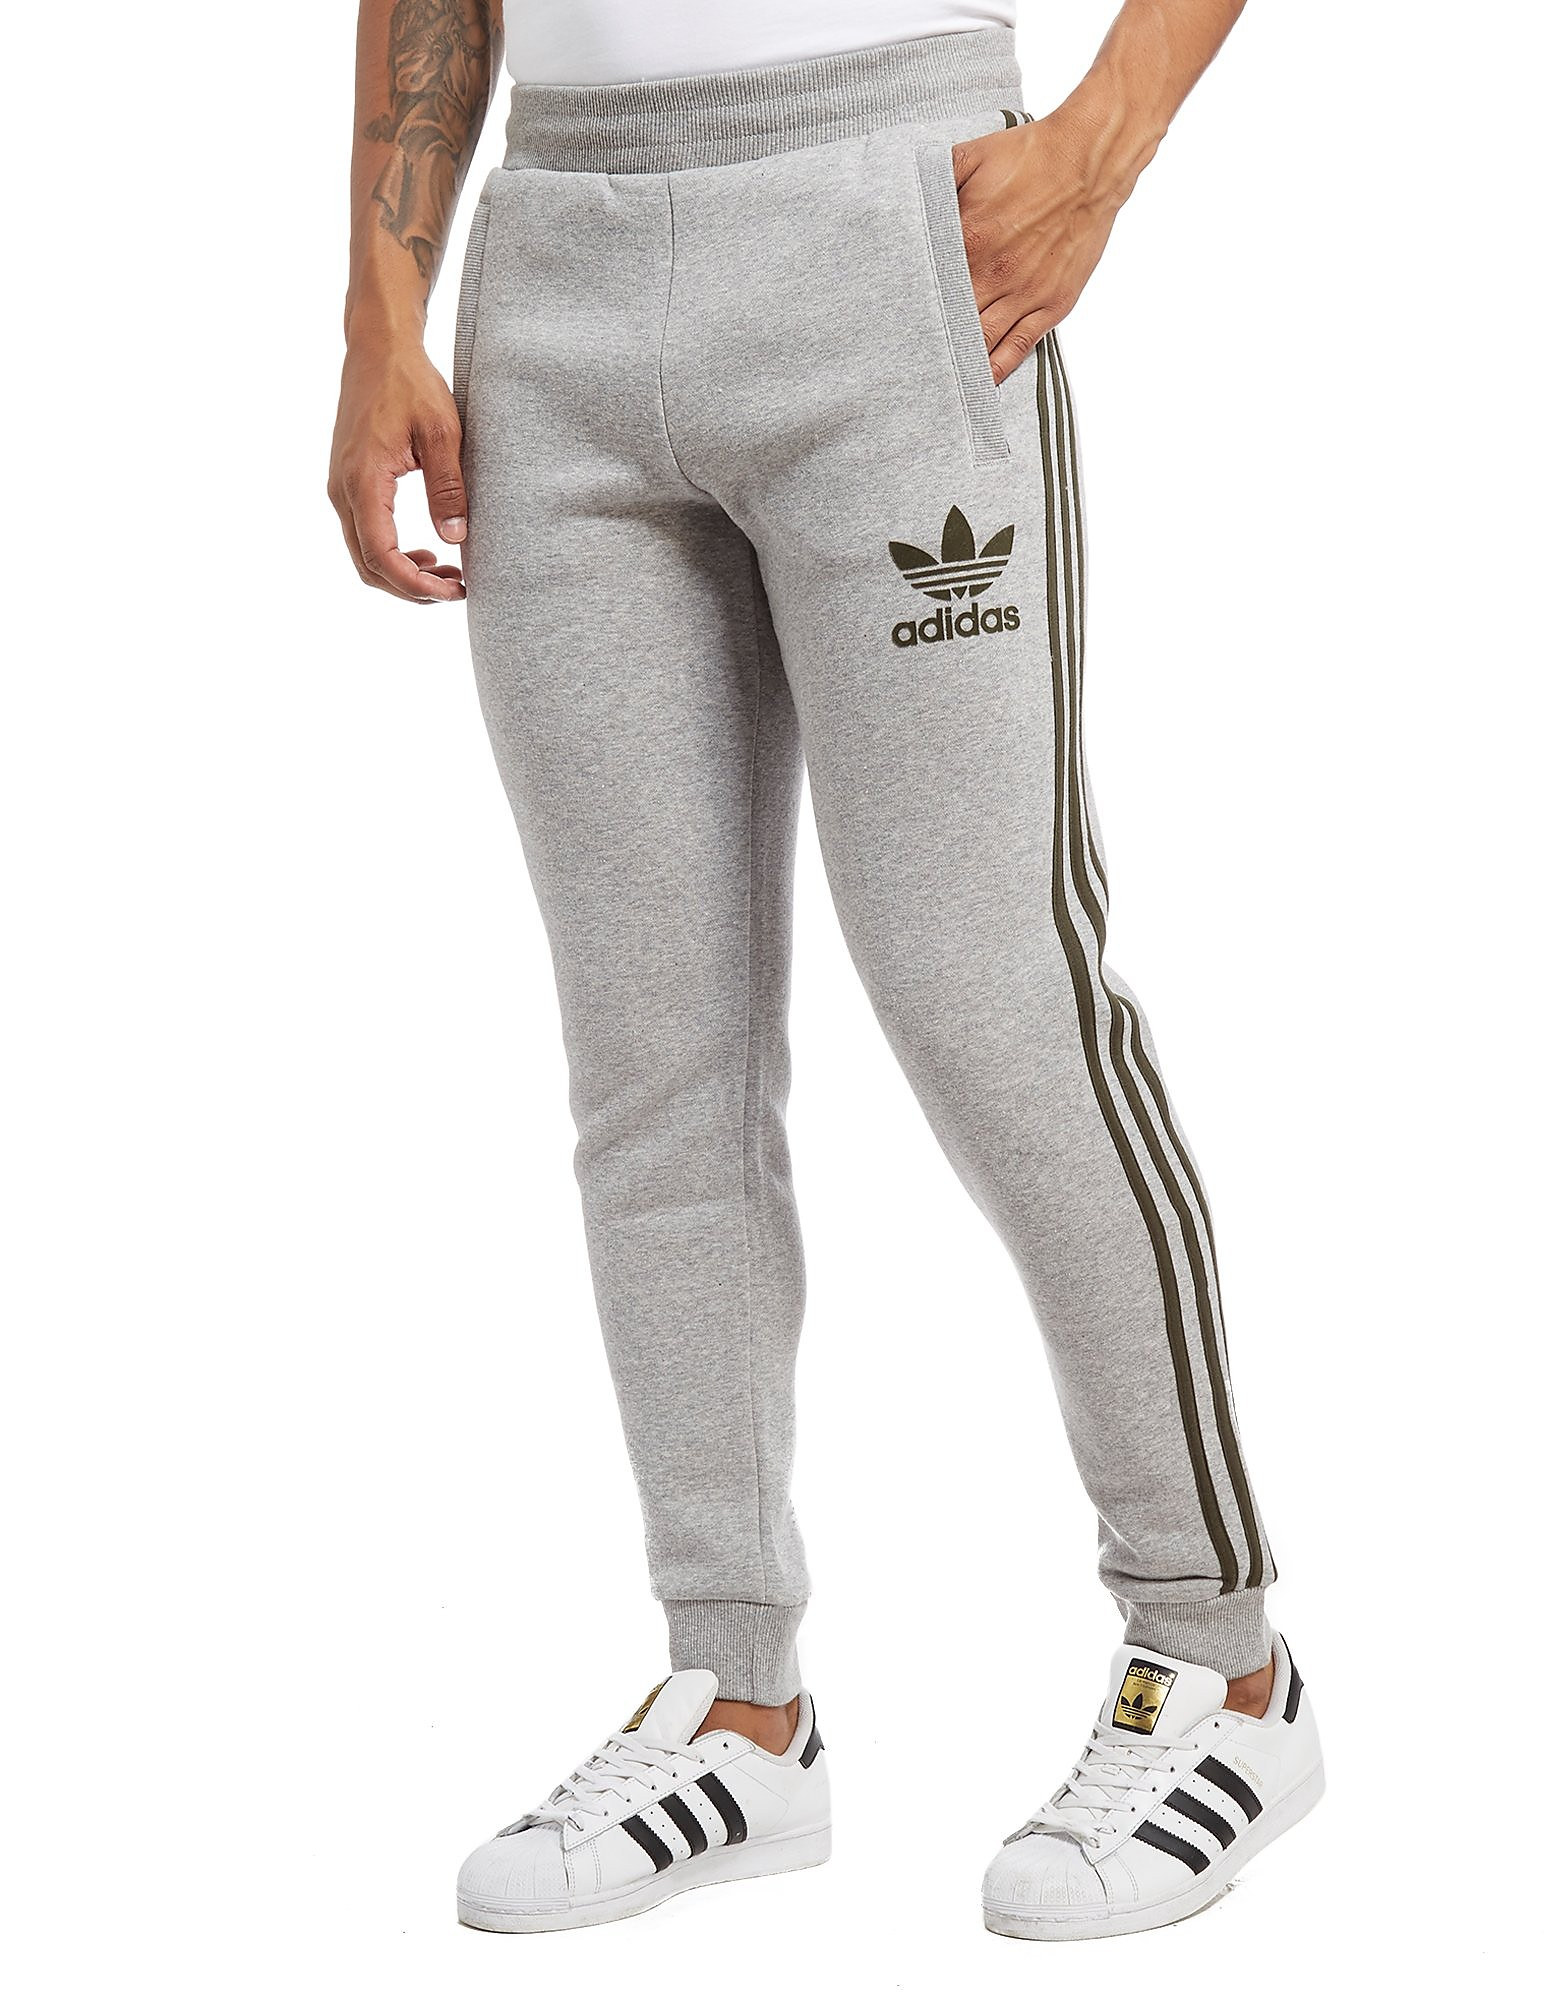 adidas Originals Pantalon California Homme